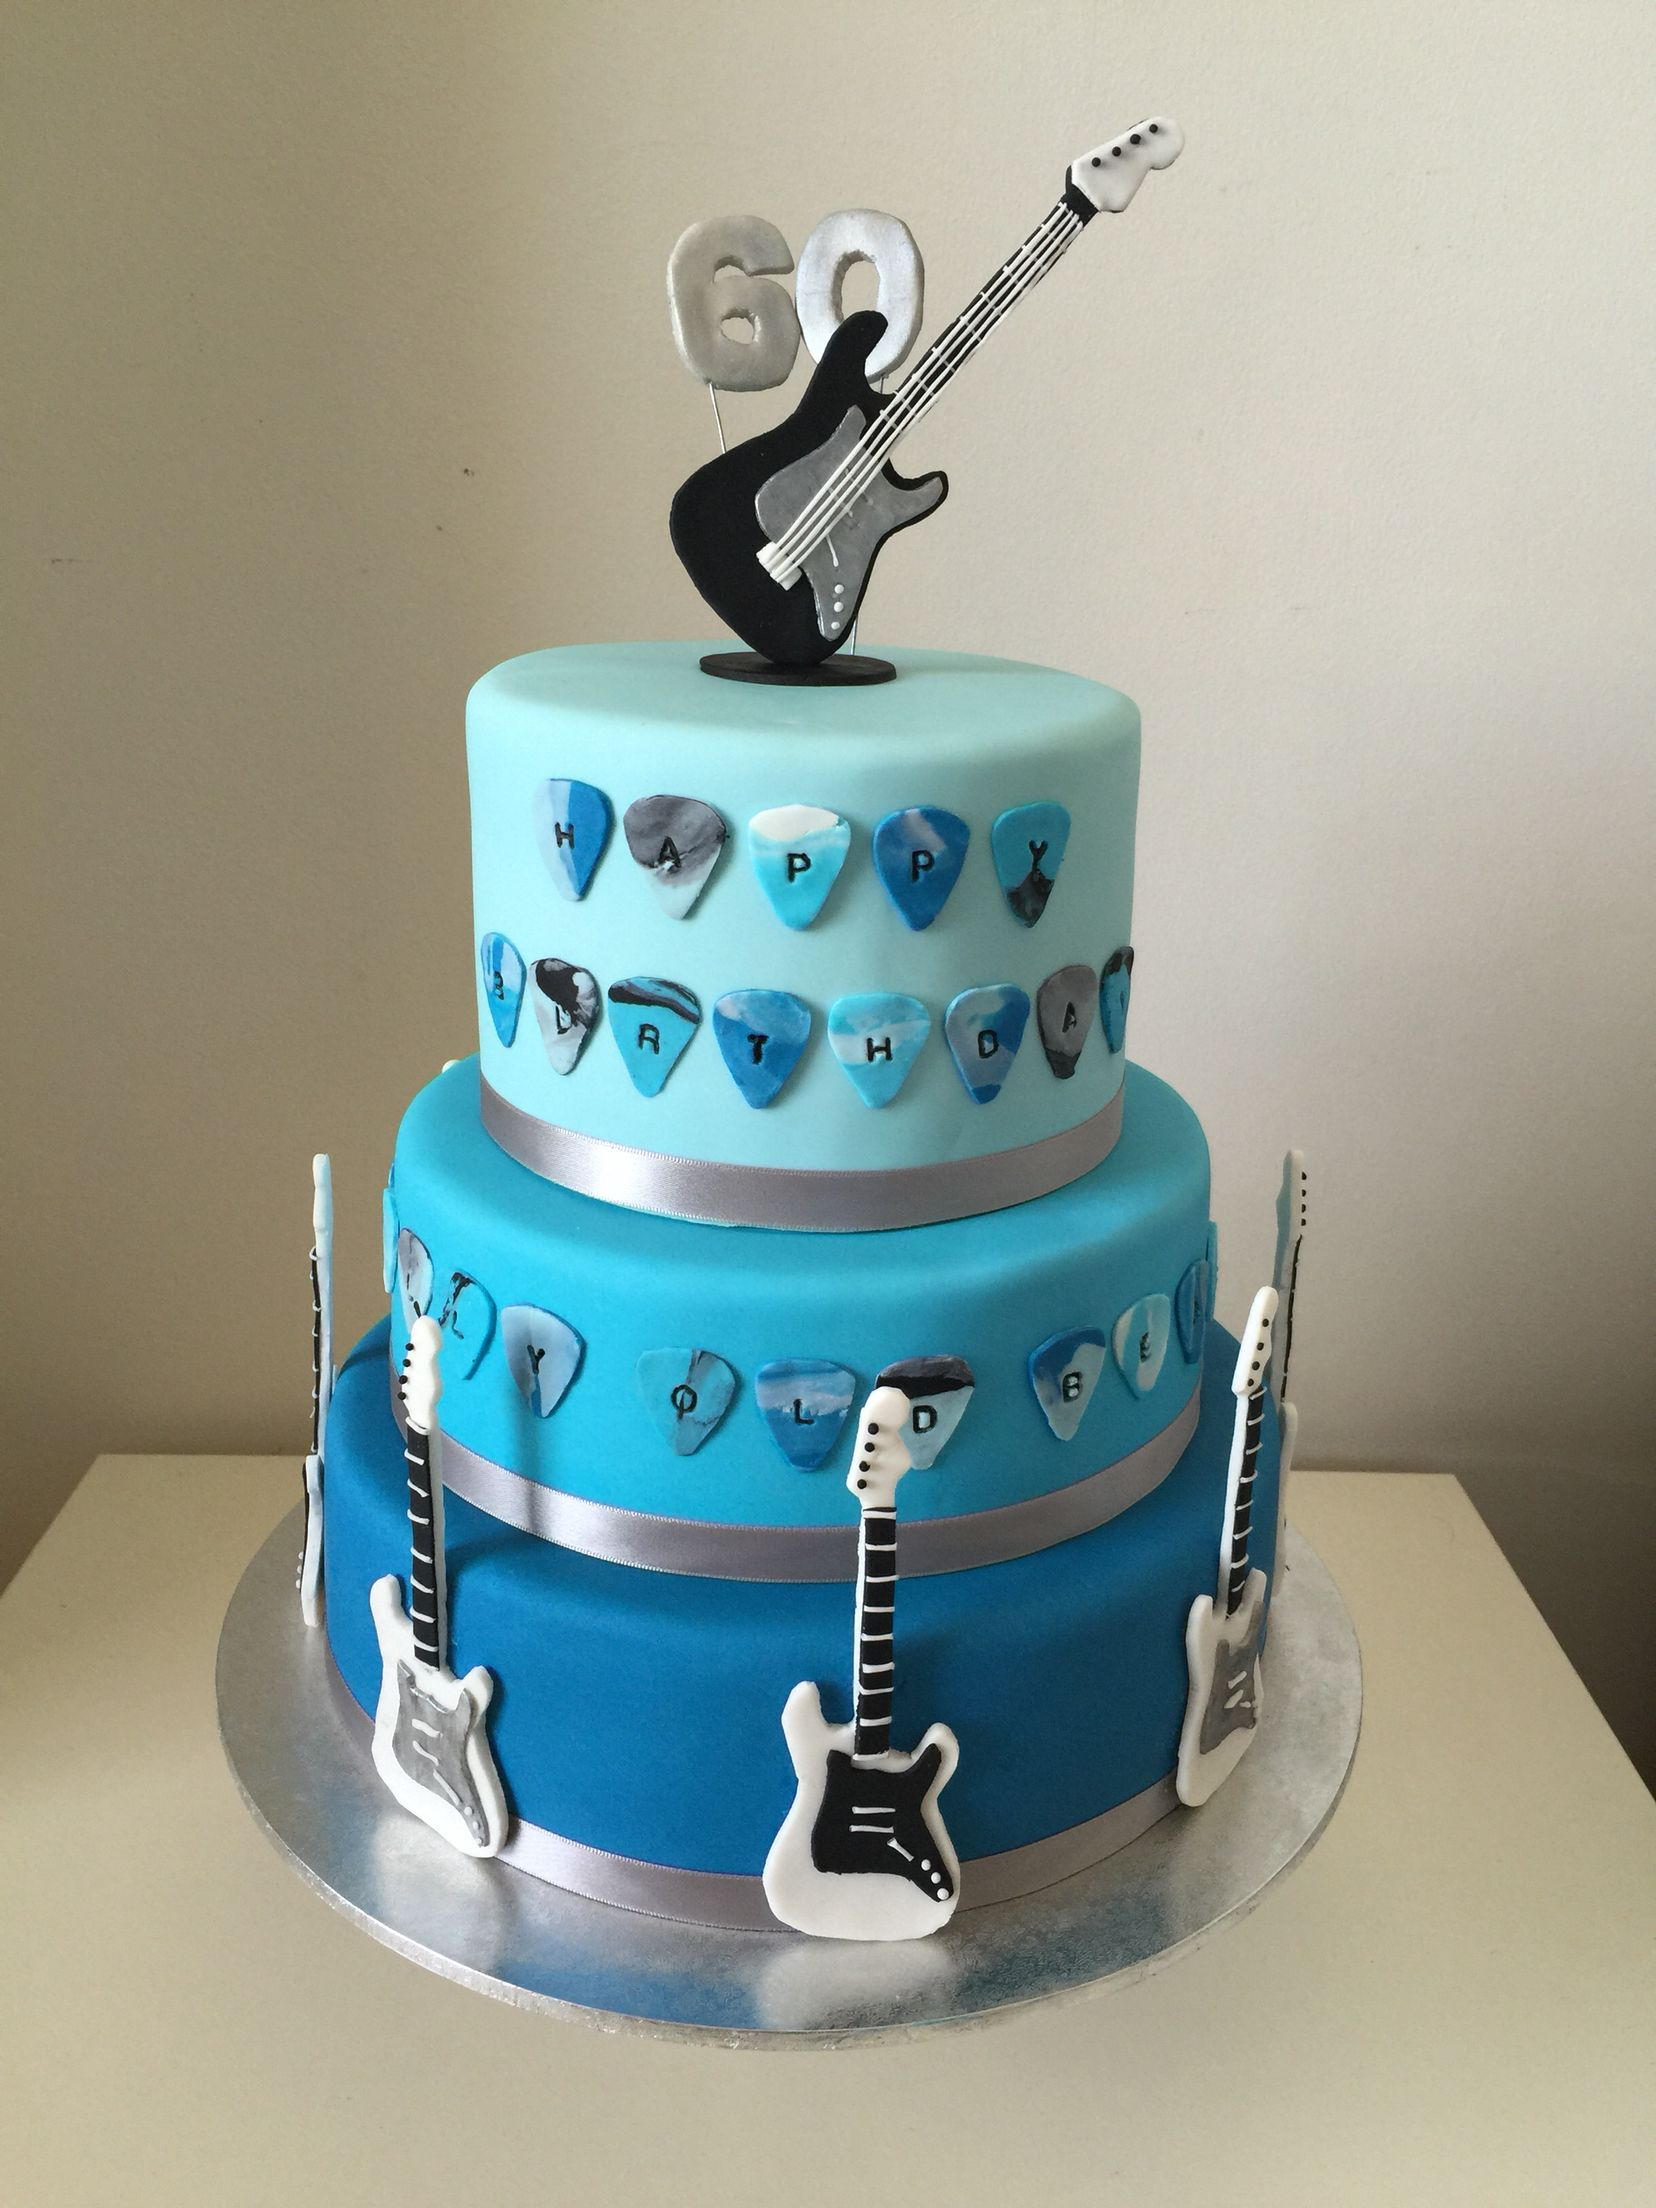 Electric guitar cake cakes Pinterest Guitar cake Guitars